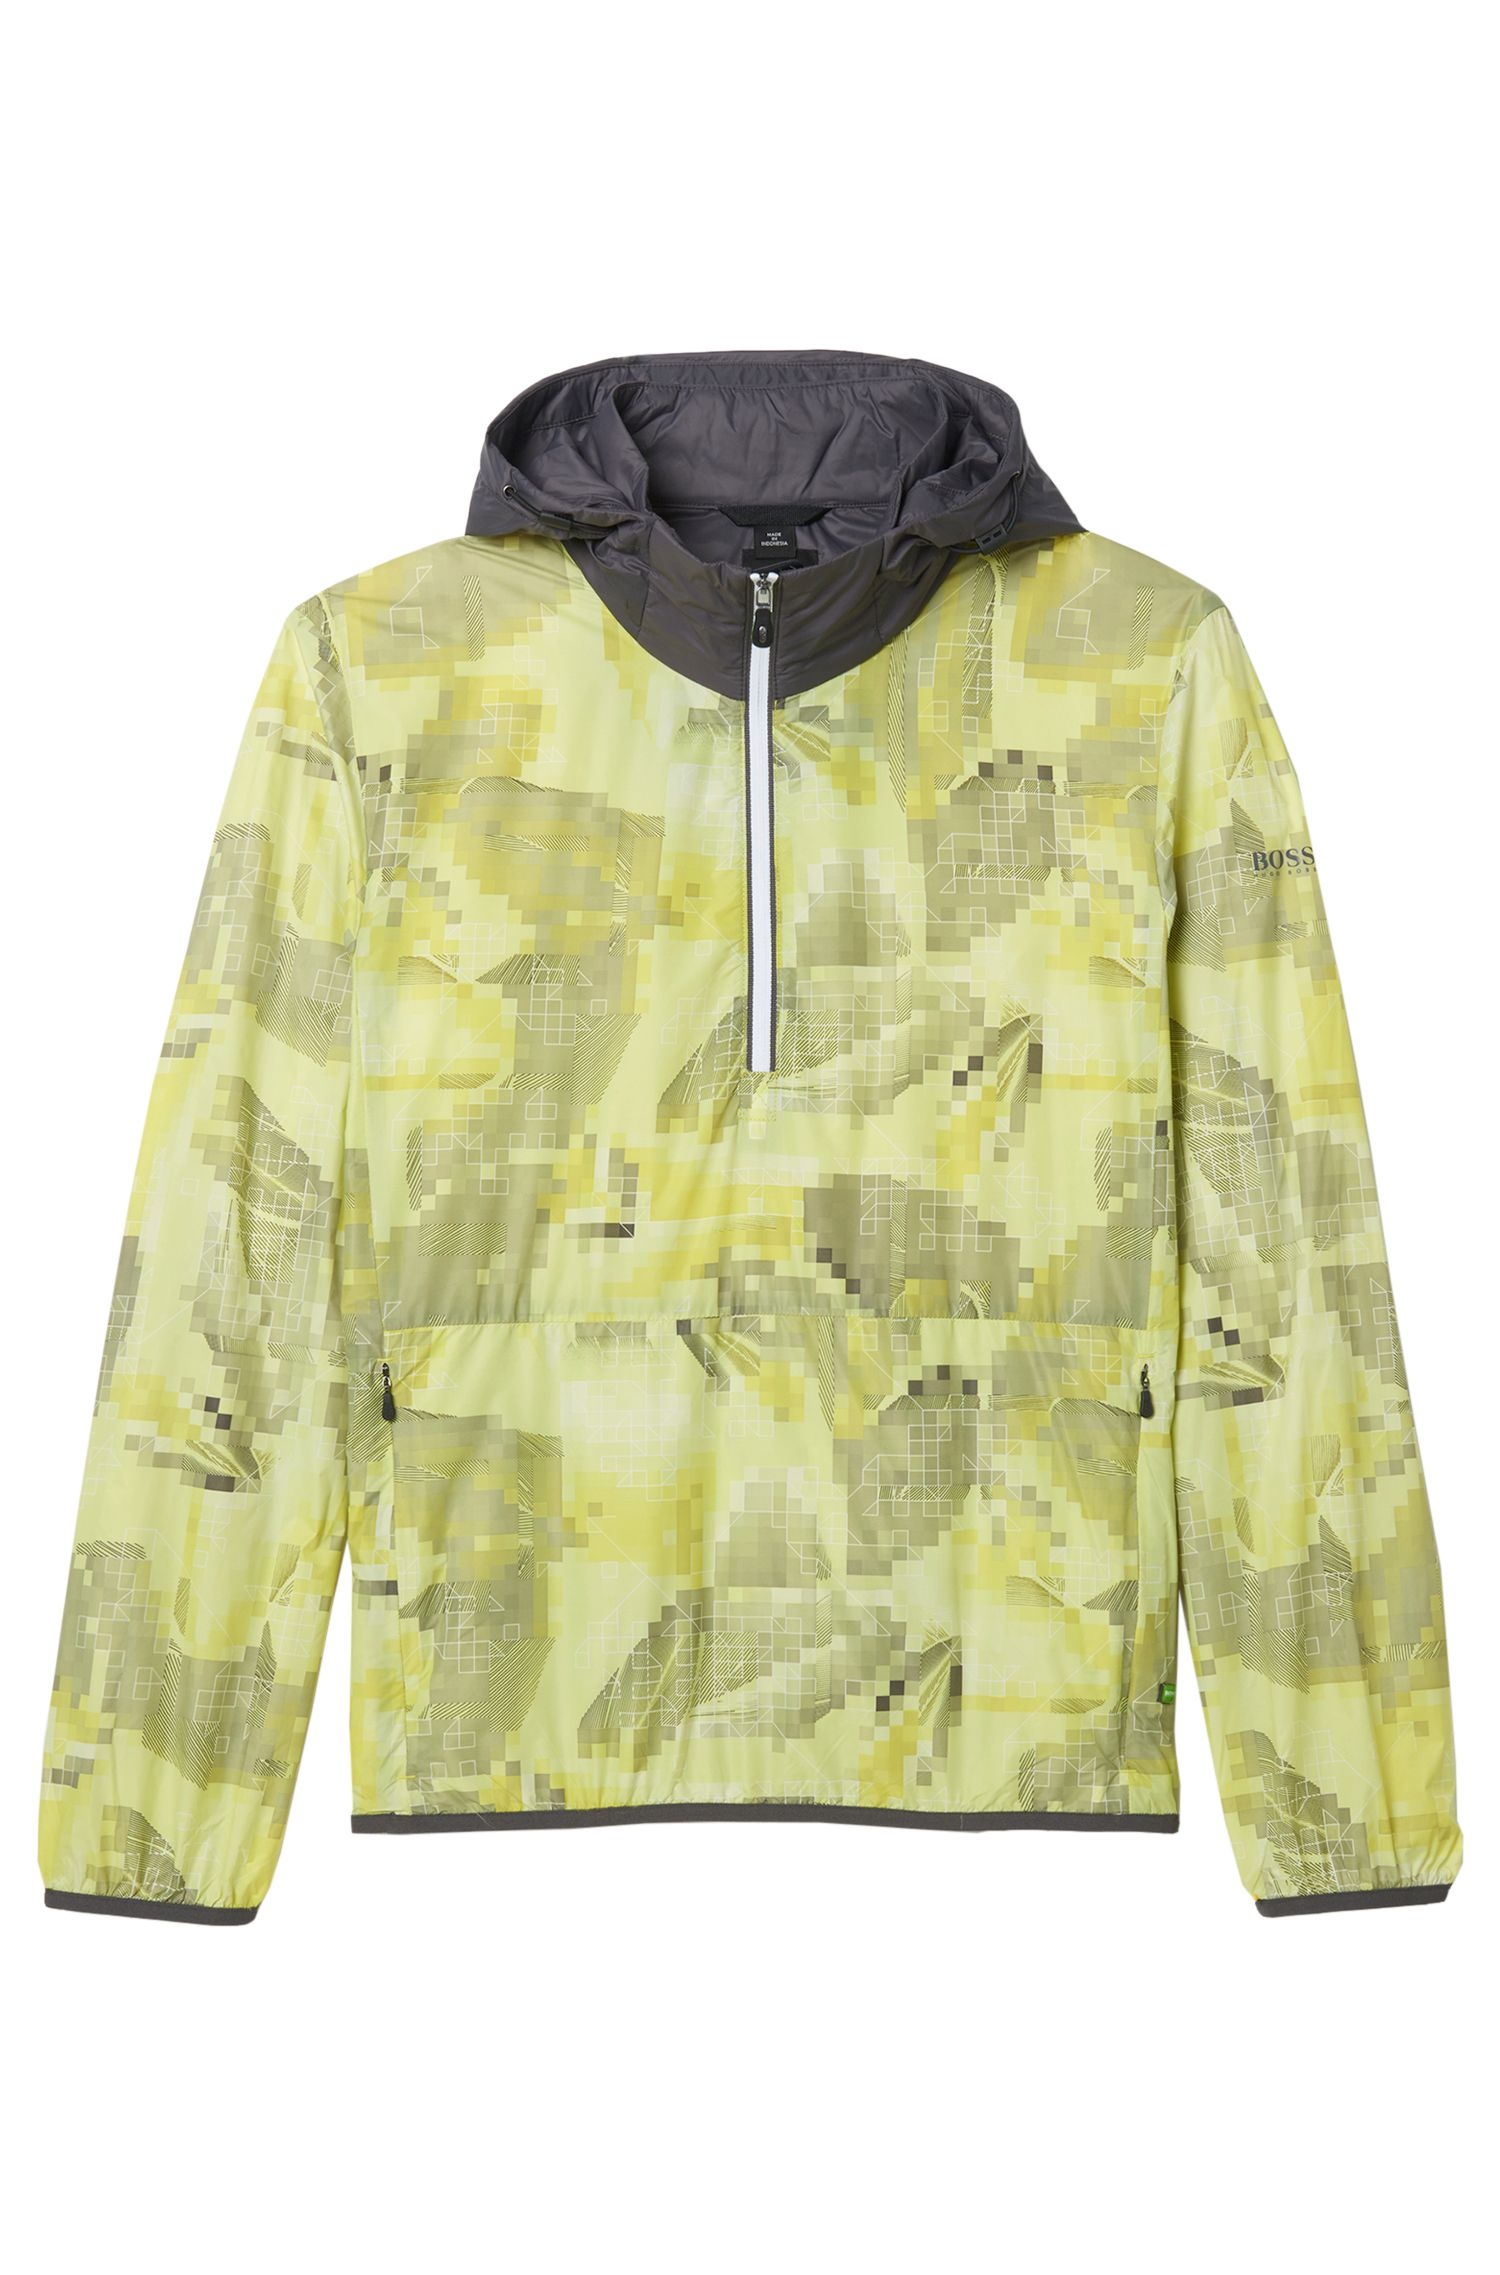 Feather Digi-Camo Print Jacket | Jepico